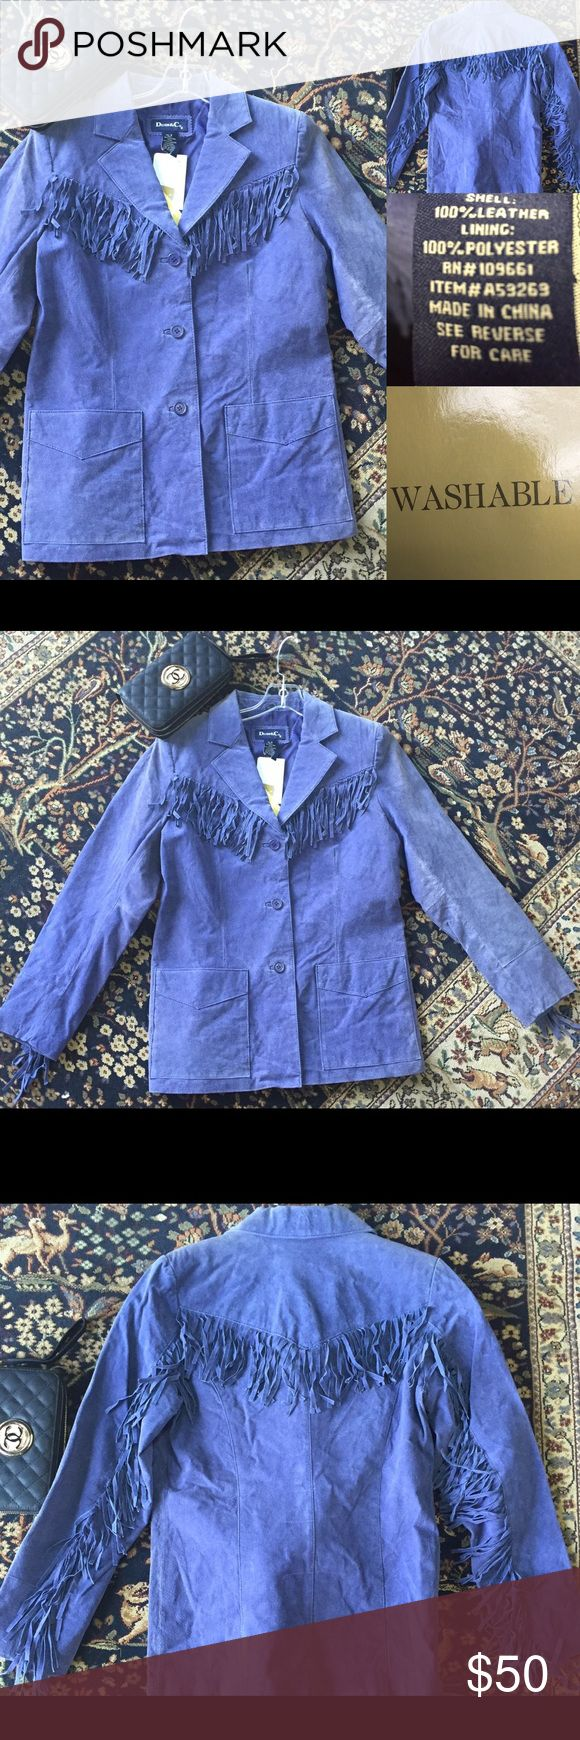 """100% Leather (suede) ---  Machine Washable!!! Make an Offer******Blue leather (suede) Fringe detailing lends southwestern flair to the front yoke, back yoke, and back of each sleeve. From Denim & Co.(R) Fashions. Fully lined, notched collar, patch pockets, front dyed-to-match buttons XS(2-4), S(6-8), M(10-12), L(14-16), XL(18-20), 1X(18W-20W), 2X(22W-24W), 3X(26W-28W) Semi-fitted; length measurements XS 27-1/2"""", S 28"""", M 28-1/2"""", L 29"""", XL 29-1/2"""", 1X 30"""", 2X 30-1/2"""", 3X 31"""" Shell 100%…"""